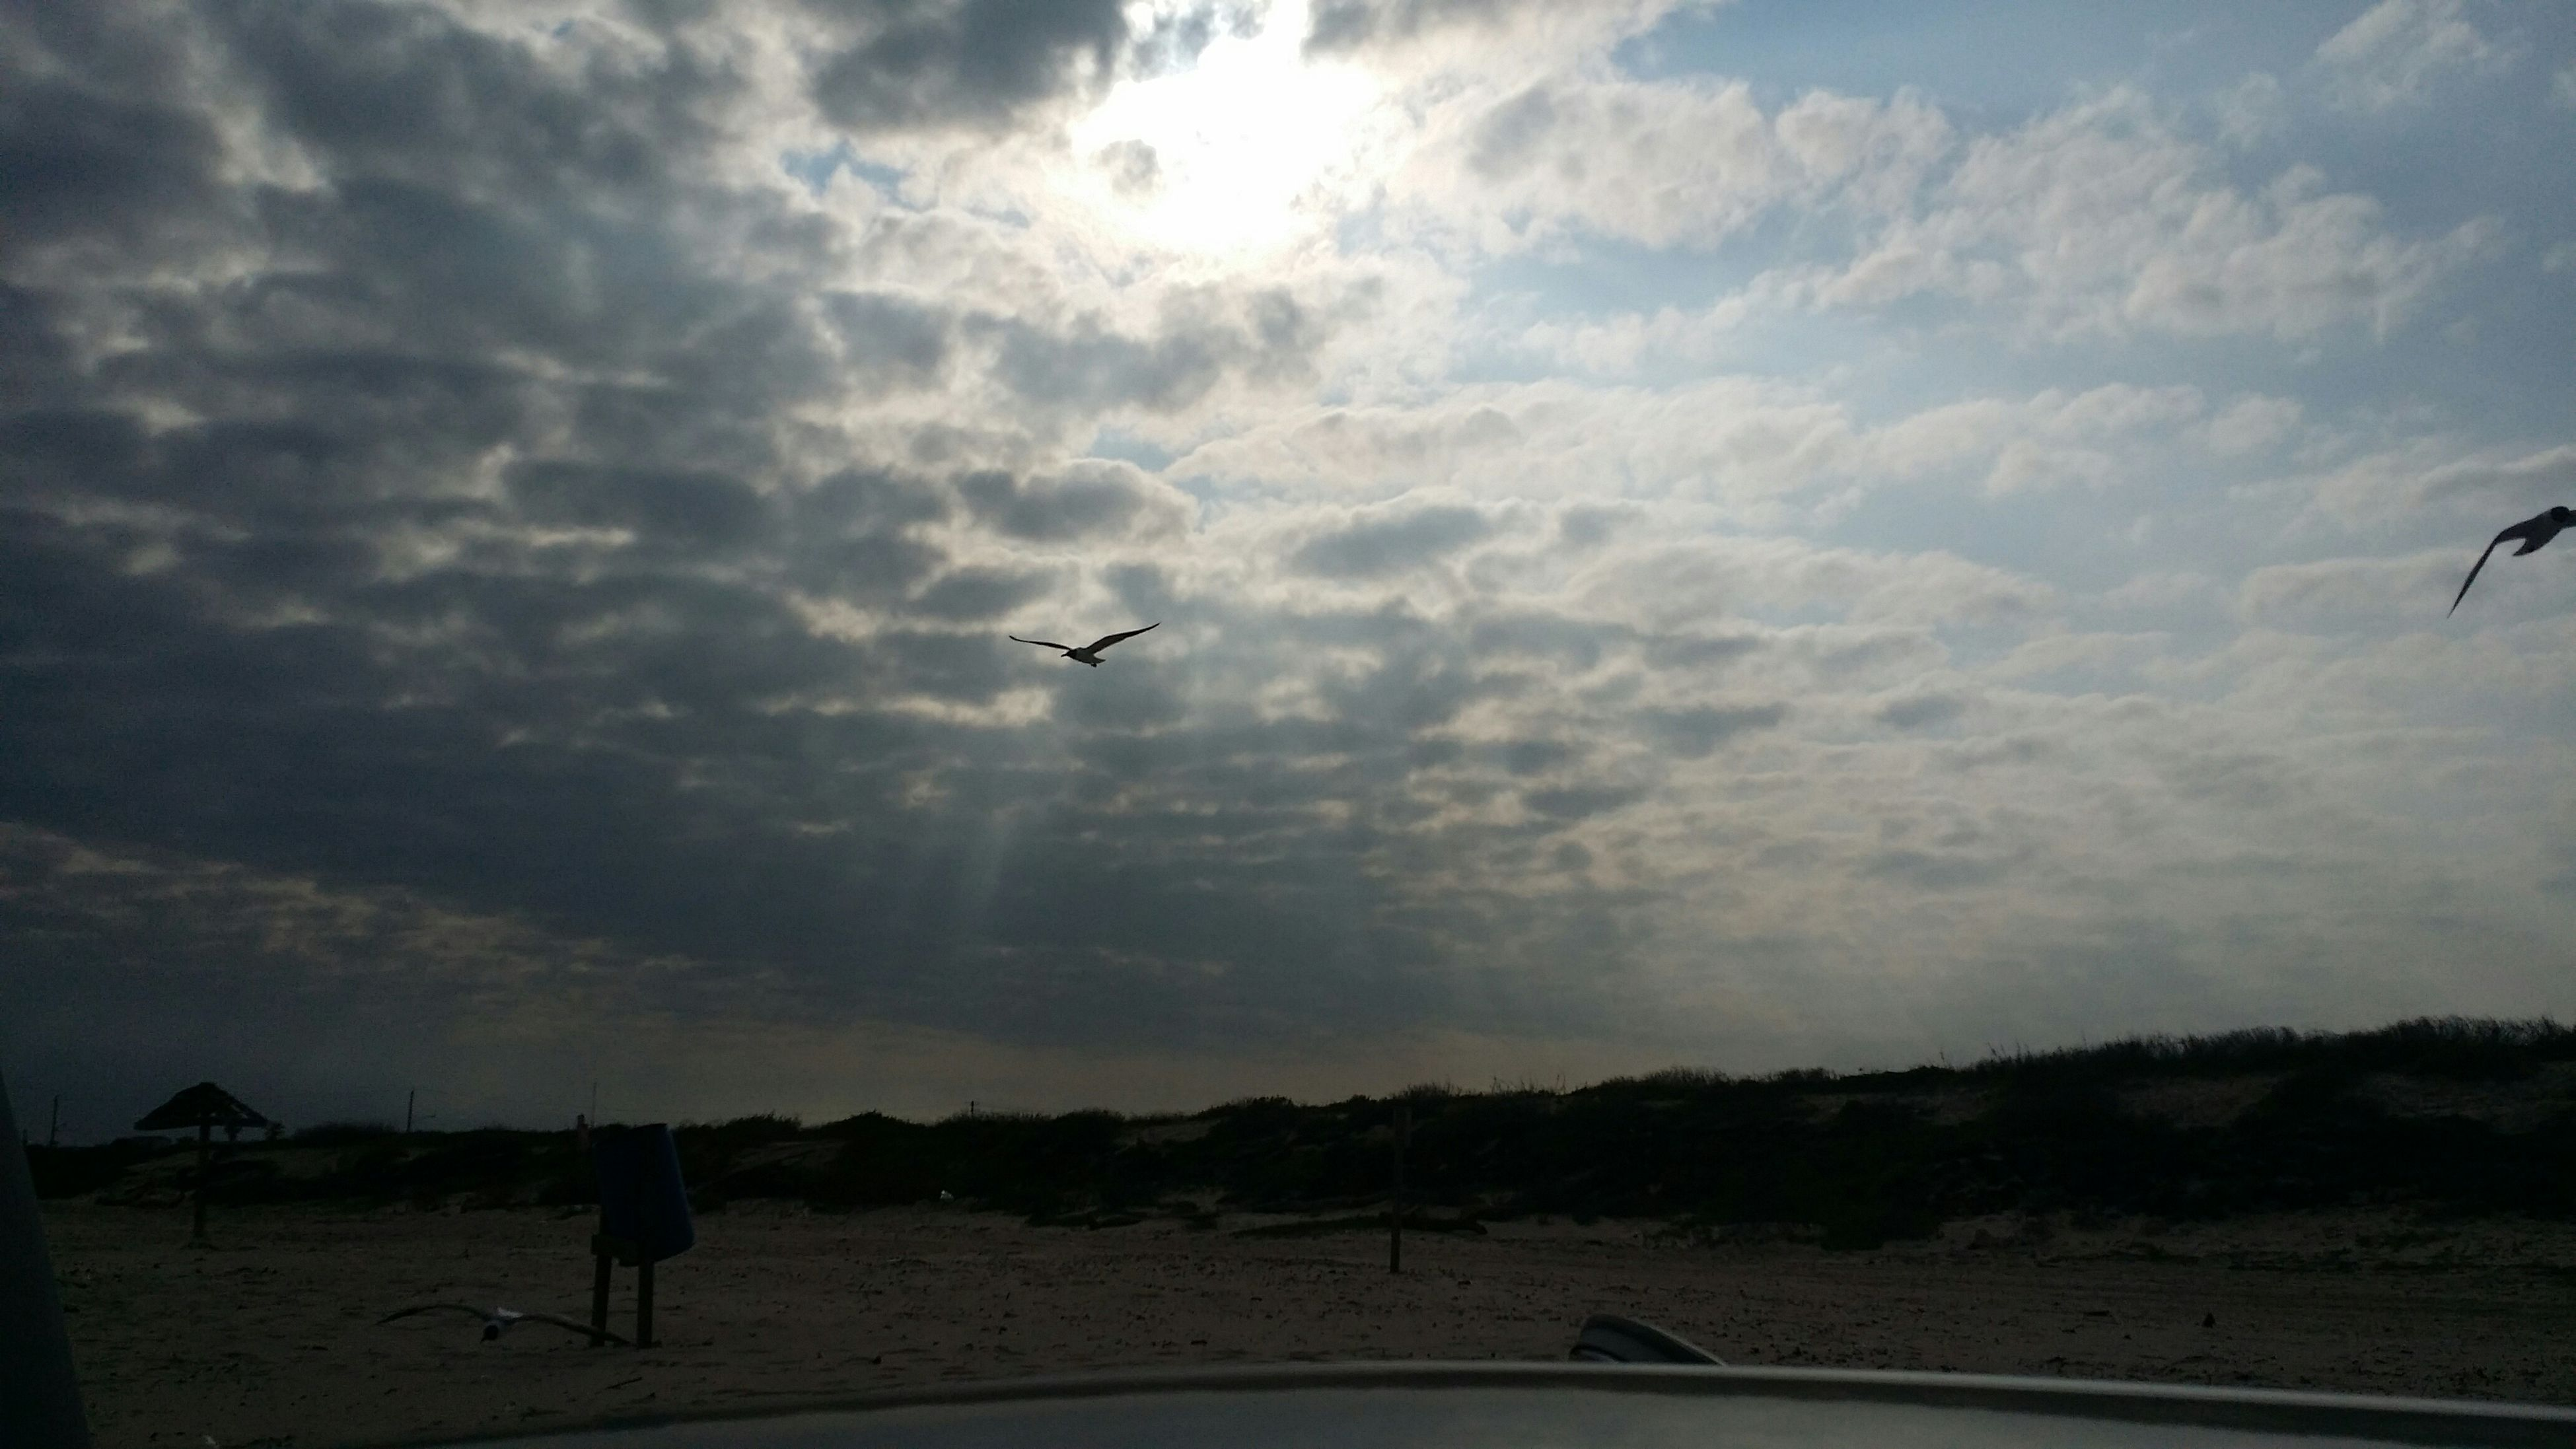 flying, sky, transportation, cloud - sky, silhouette, animal themes, bird, mid-air, airplane, mode of transport, cloud, nature, cloudy, on the move, one animal, beauty in nature, scenics, sunset, sunlight, sun